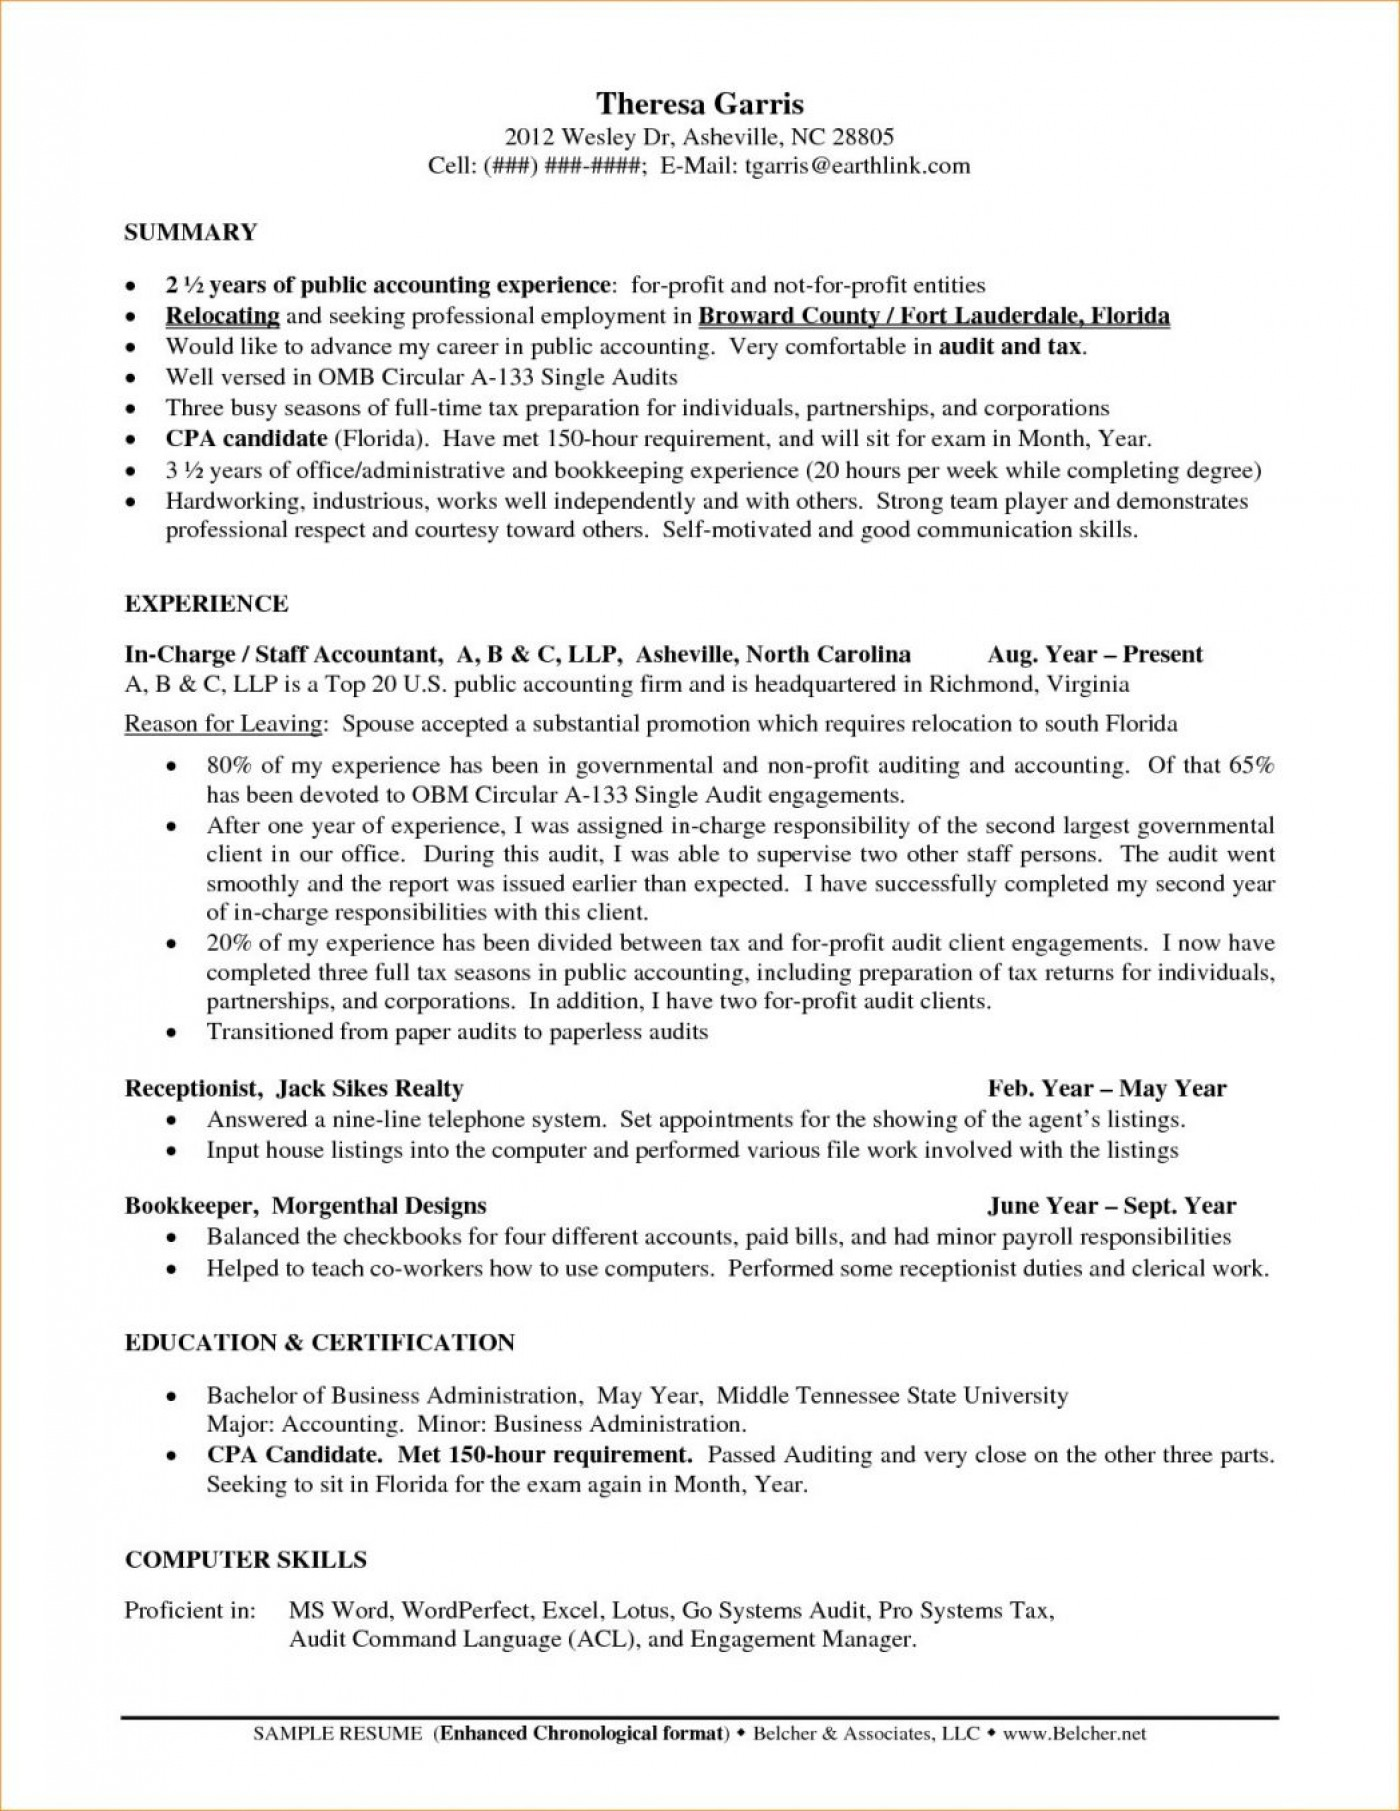 024 Essay Example Best Solutions Of Professional Mba Reflective Help Mri Tech Writing On Teaching Sample Cover Grea Leadership Introduction Using Gibbs Model In Third Person Work Experience Beautiful Examples For Middle School Apa High 1400